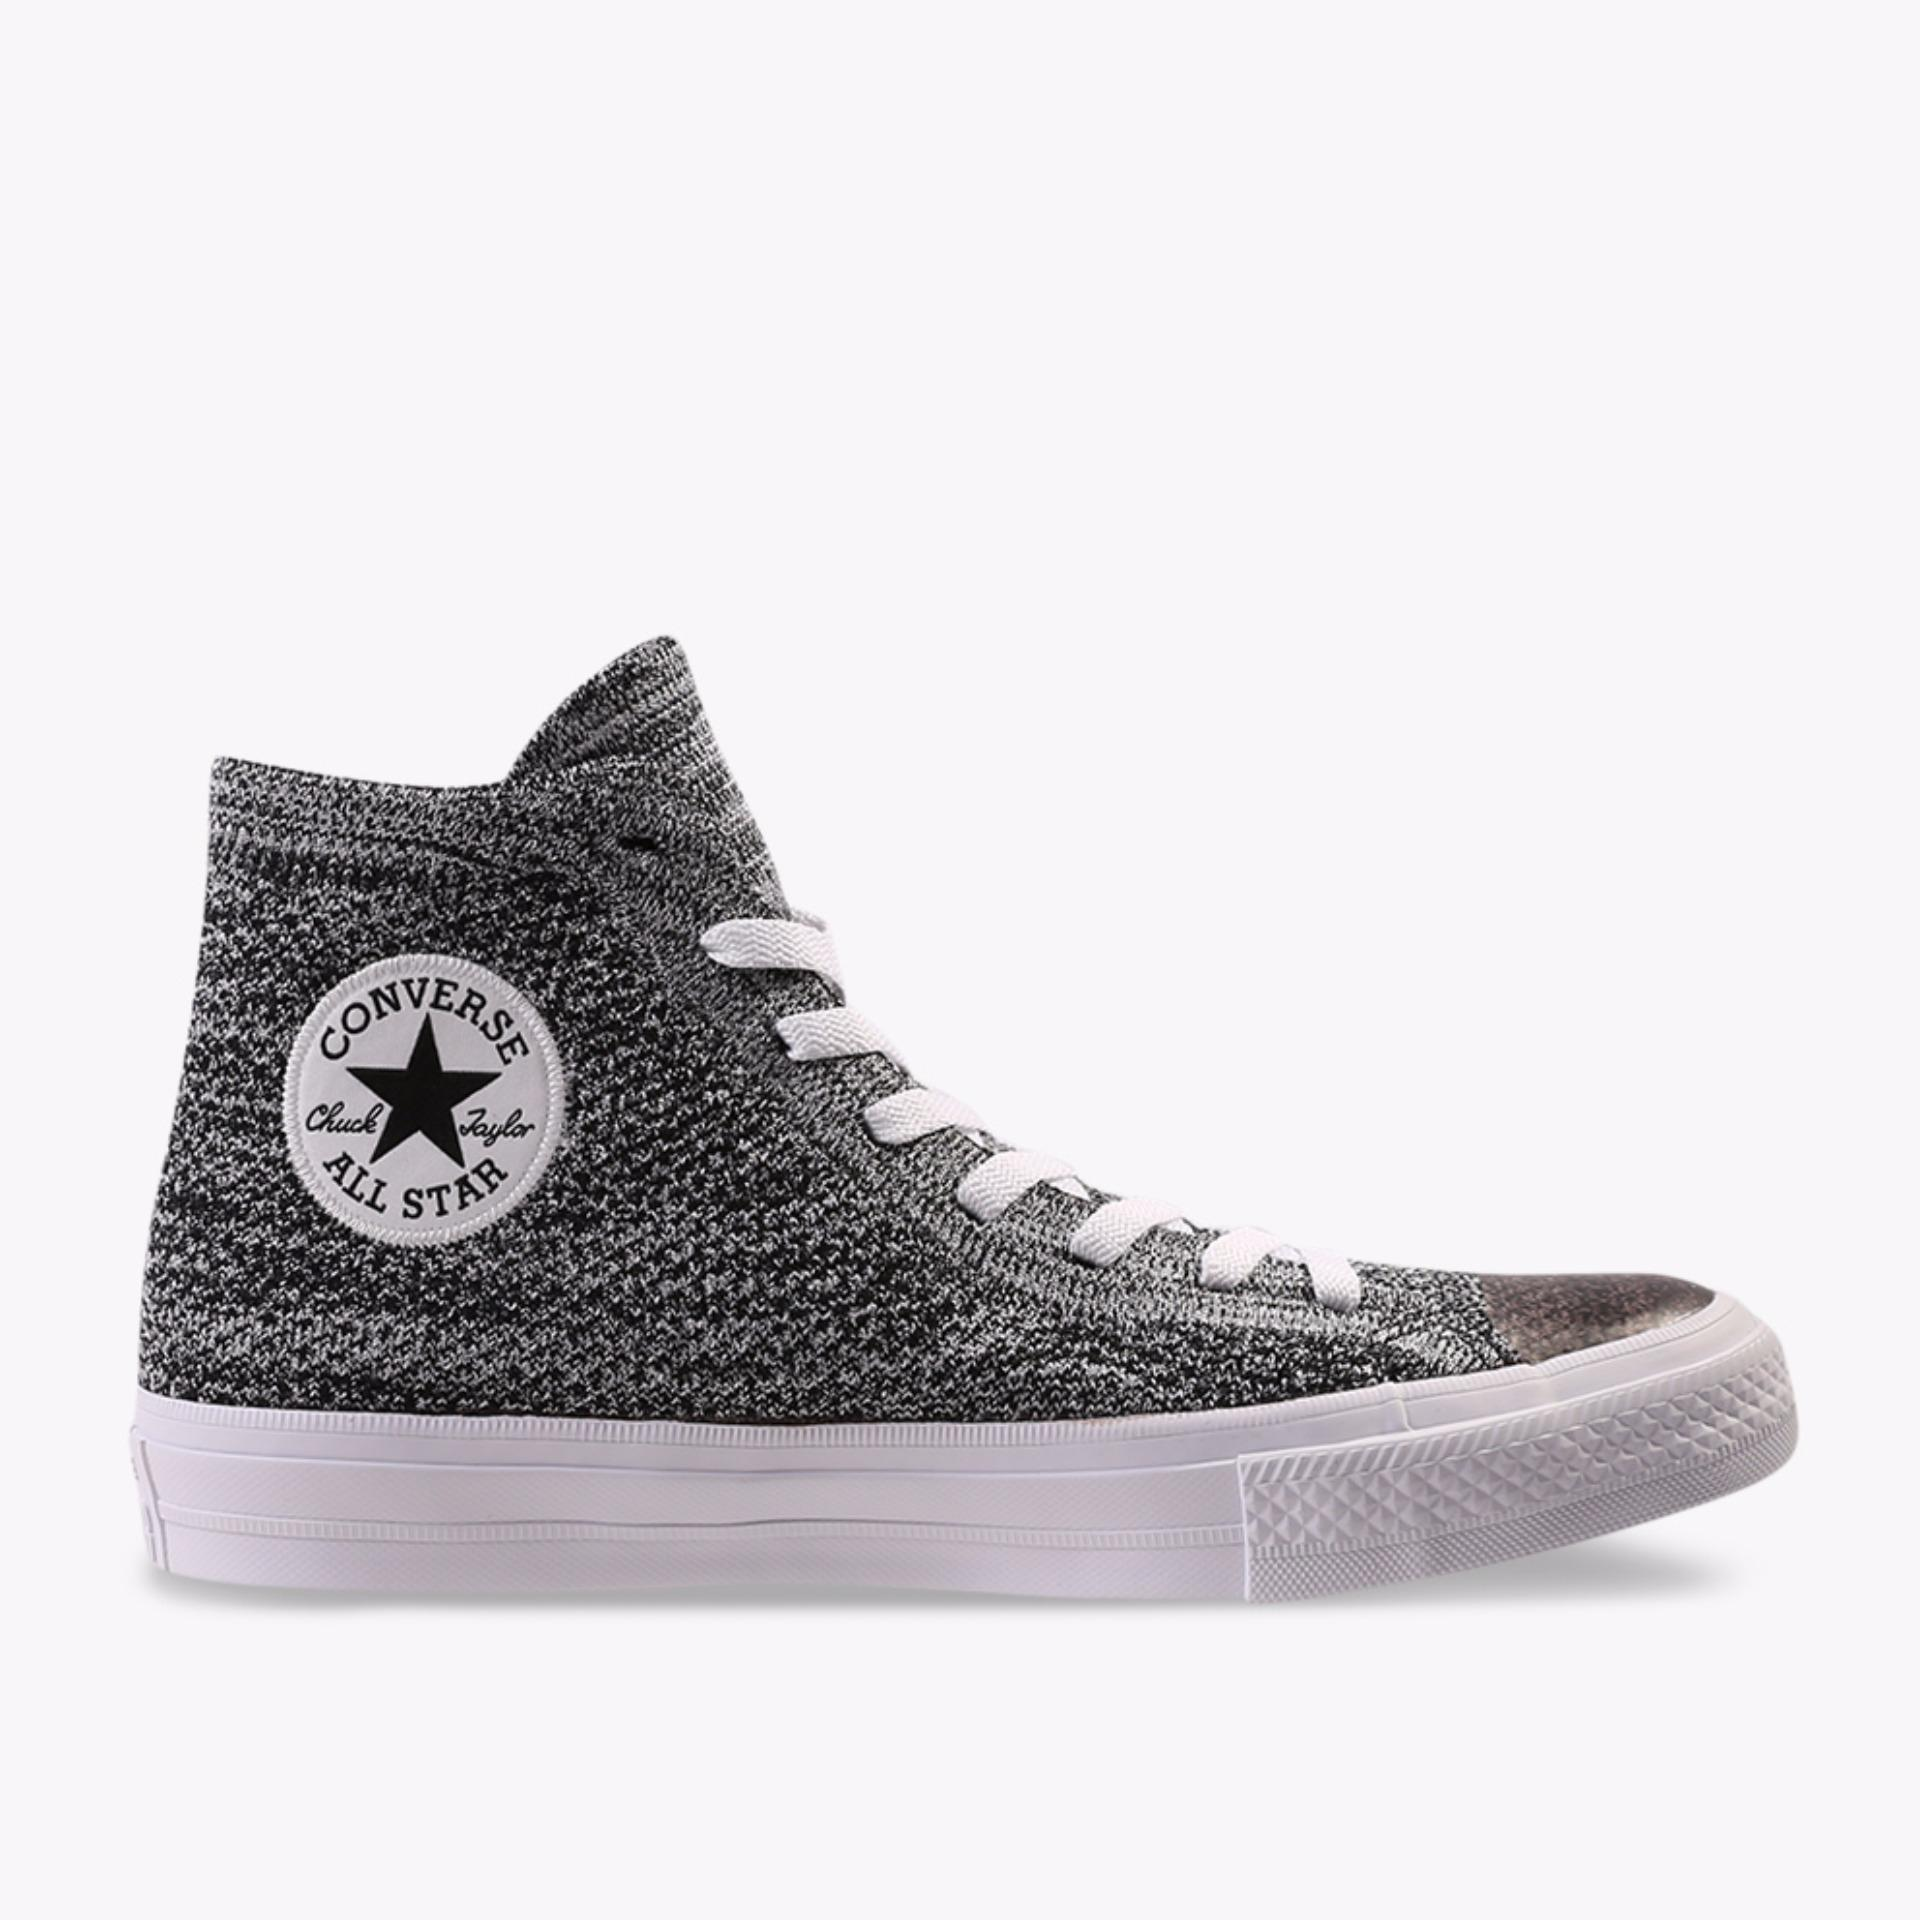 Converse Chuck Taylor All Star X Nike Flyknit Men's Sneakers Shoes - Hitam Wolf